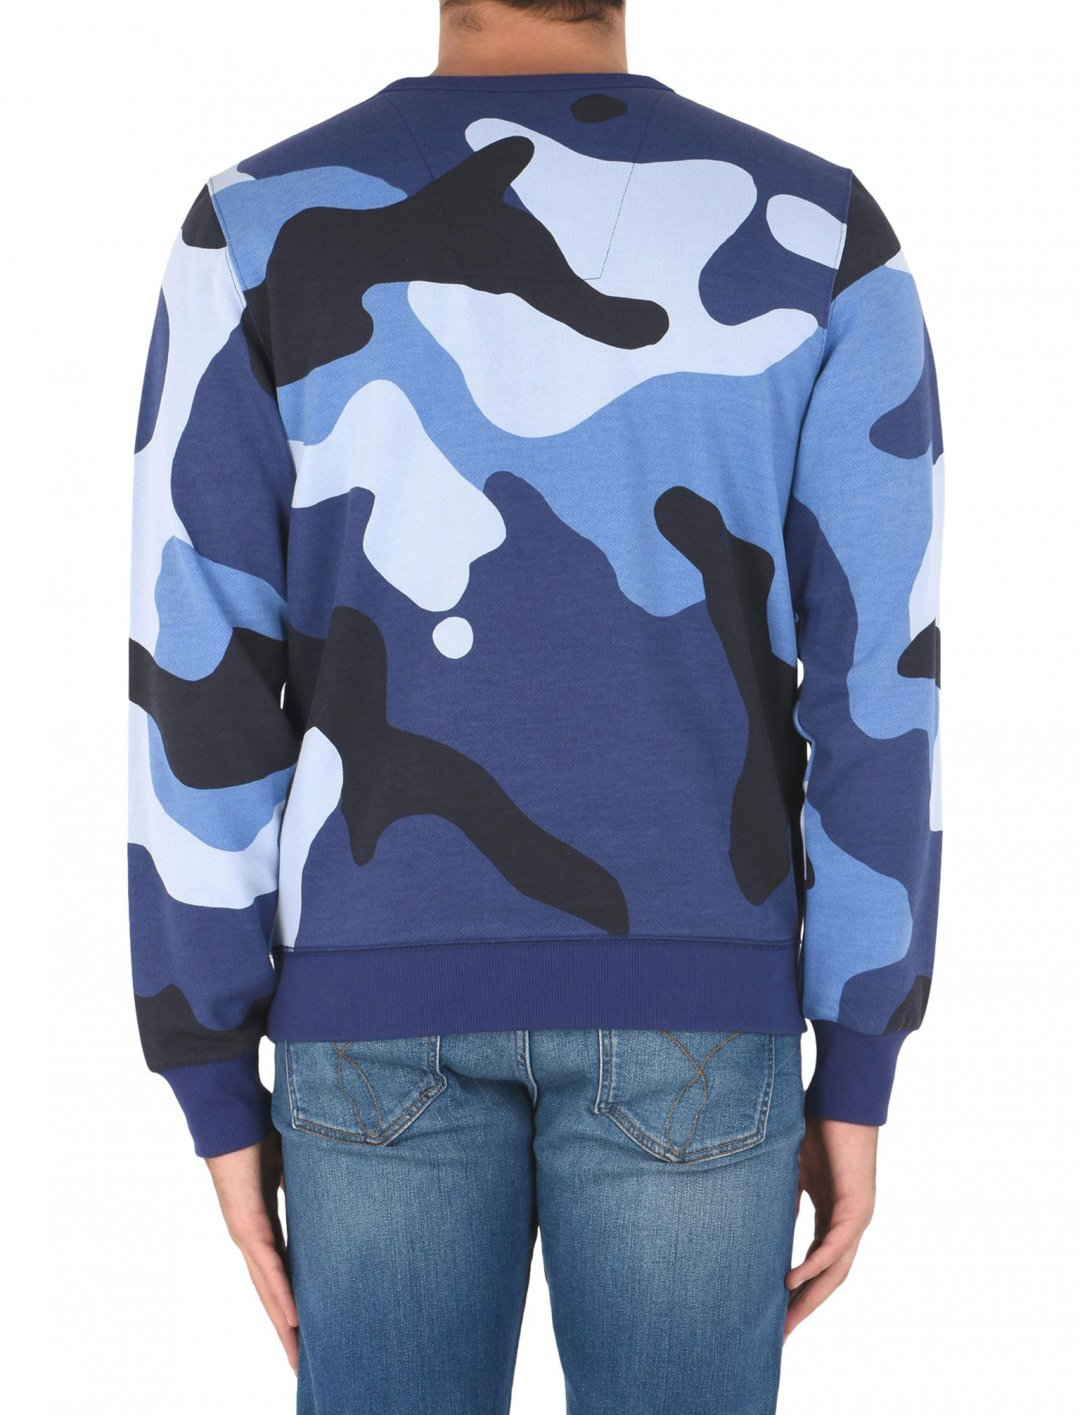 "Sweatshirt In Camo {""id"":5,""product_section_id"":1,""name"":""Clothing"",""order"":5} G-Star Raw"